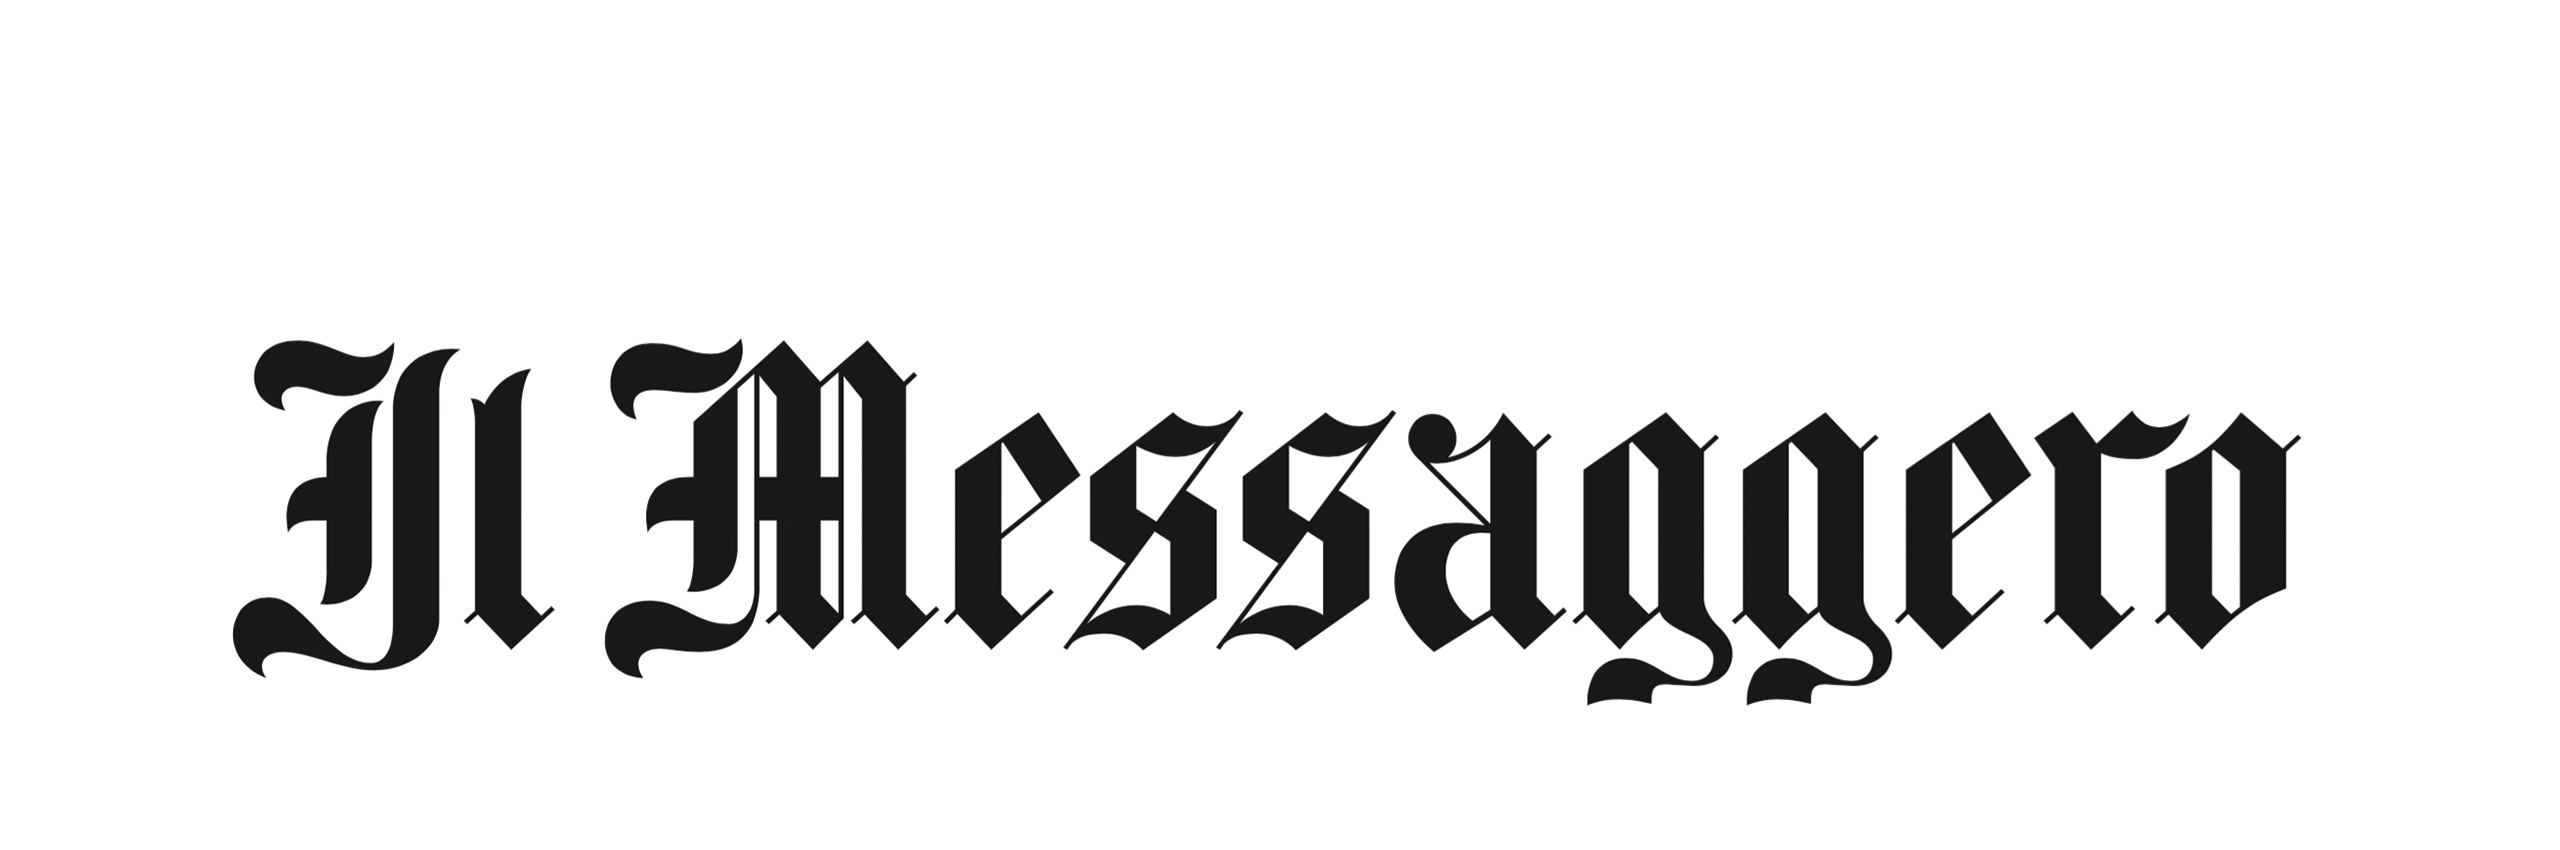 Image result for il messaggero